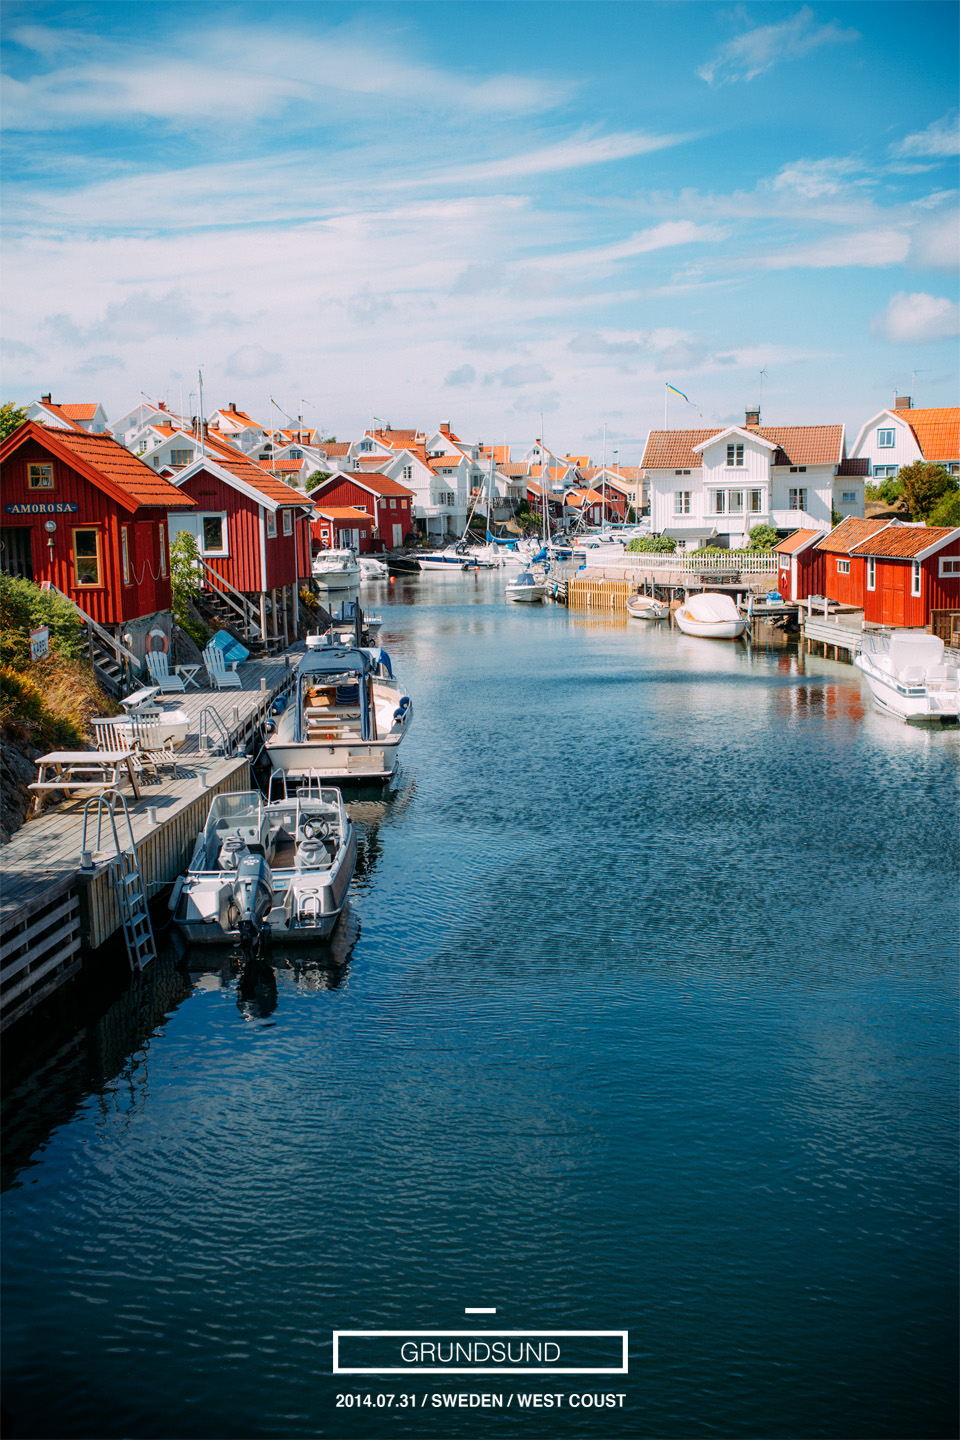 Throwback Thursday: Here is a photo from my vacation taken over the classic view over Grundsund.